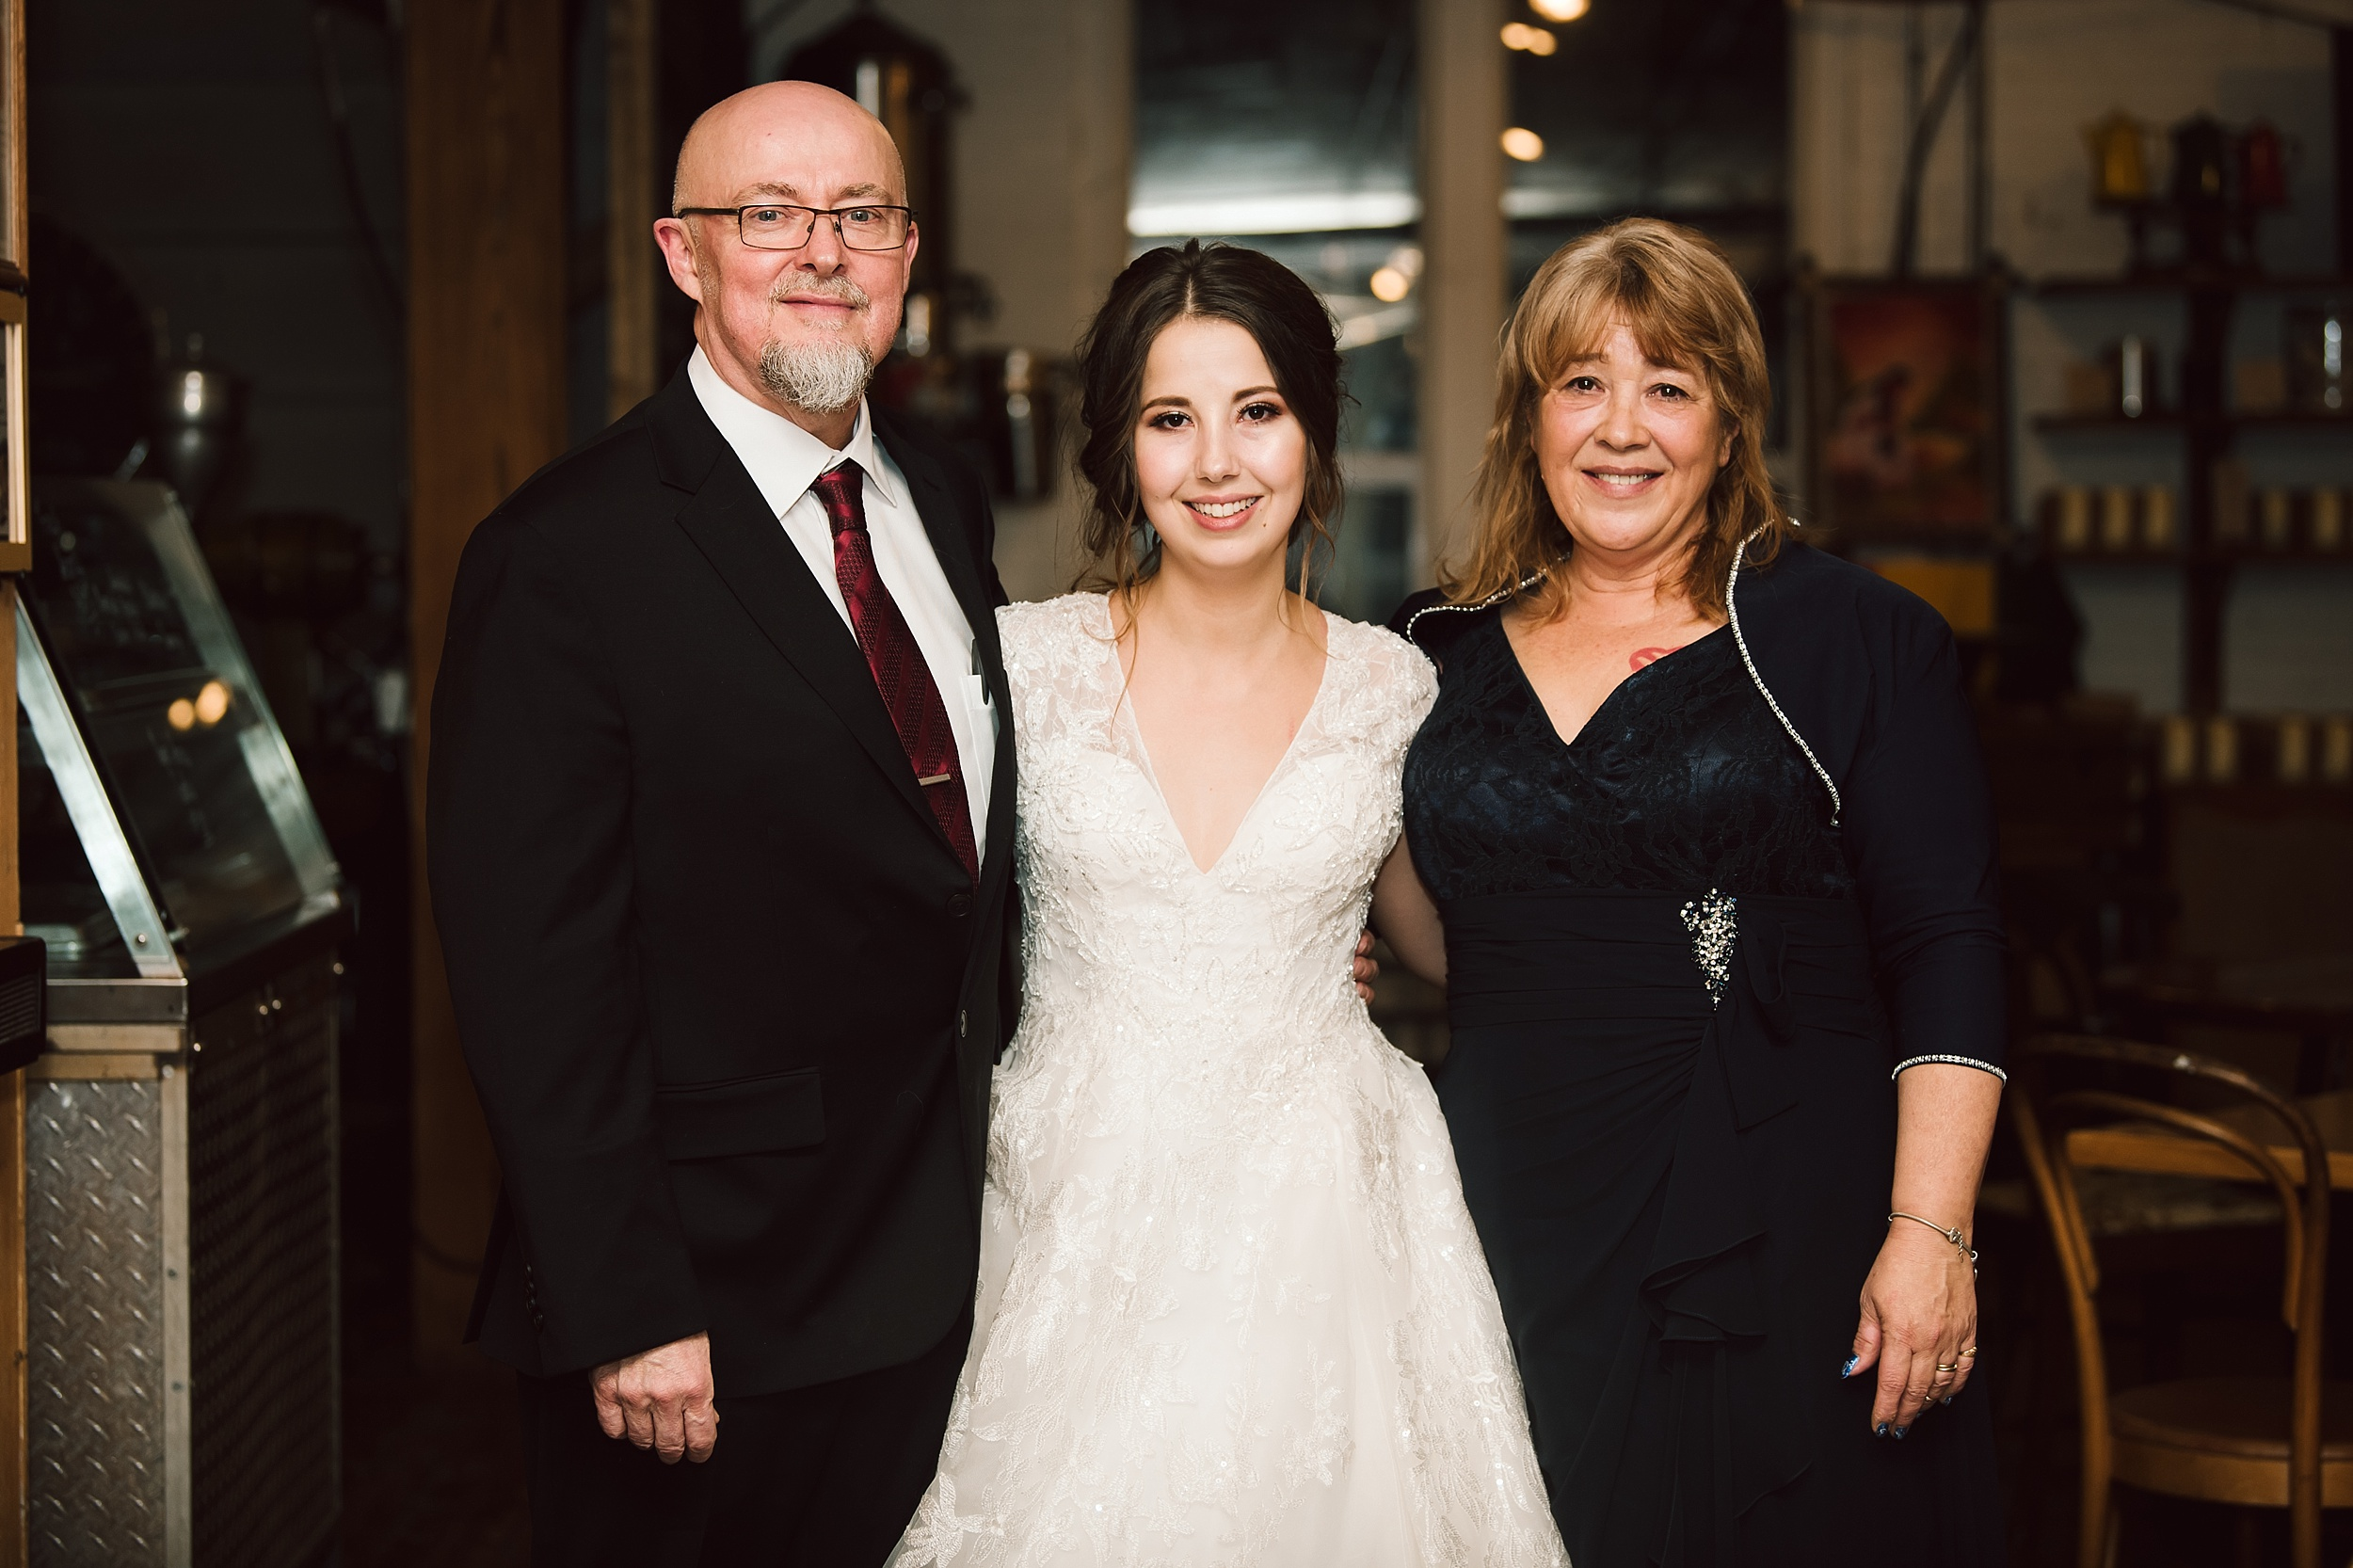 Jam_Factory_Wedding_Toronto_Winter_Wedding_Photographer_0063.jpg